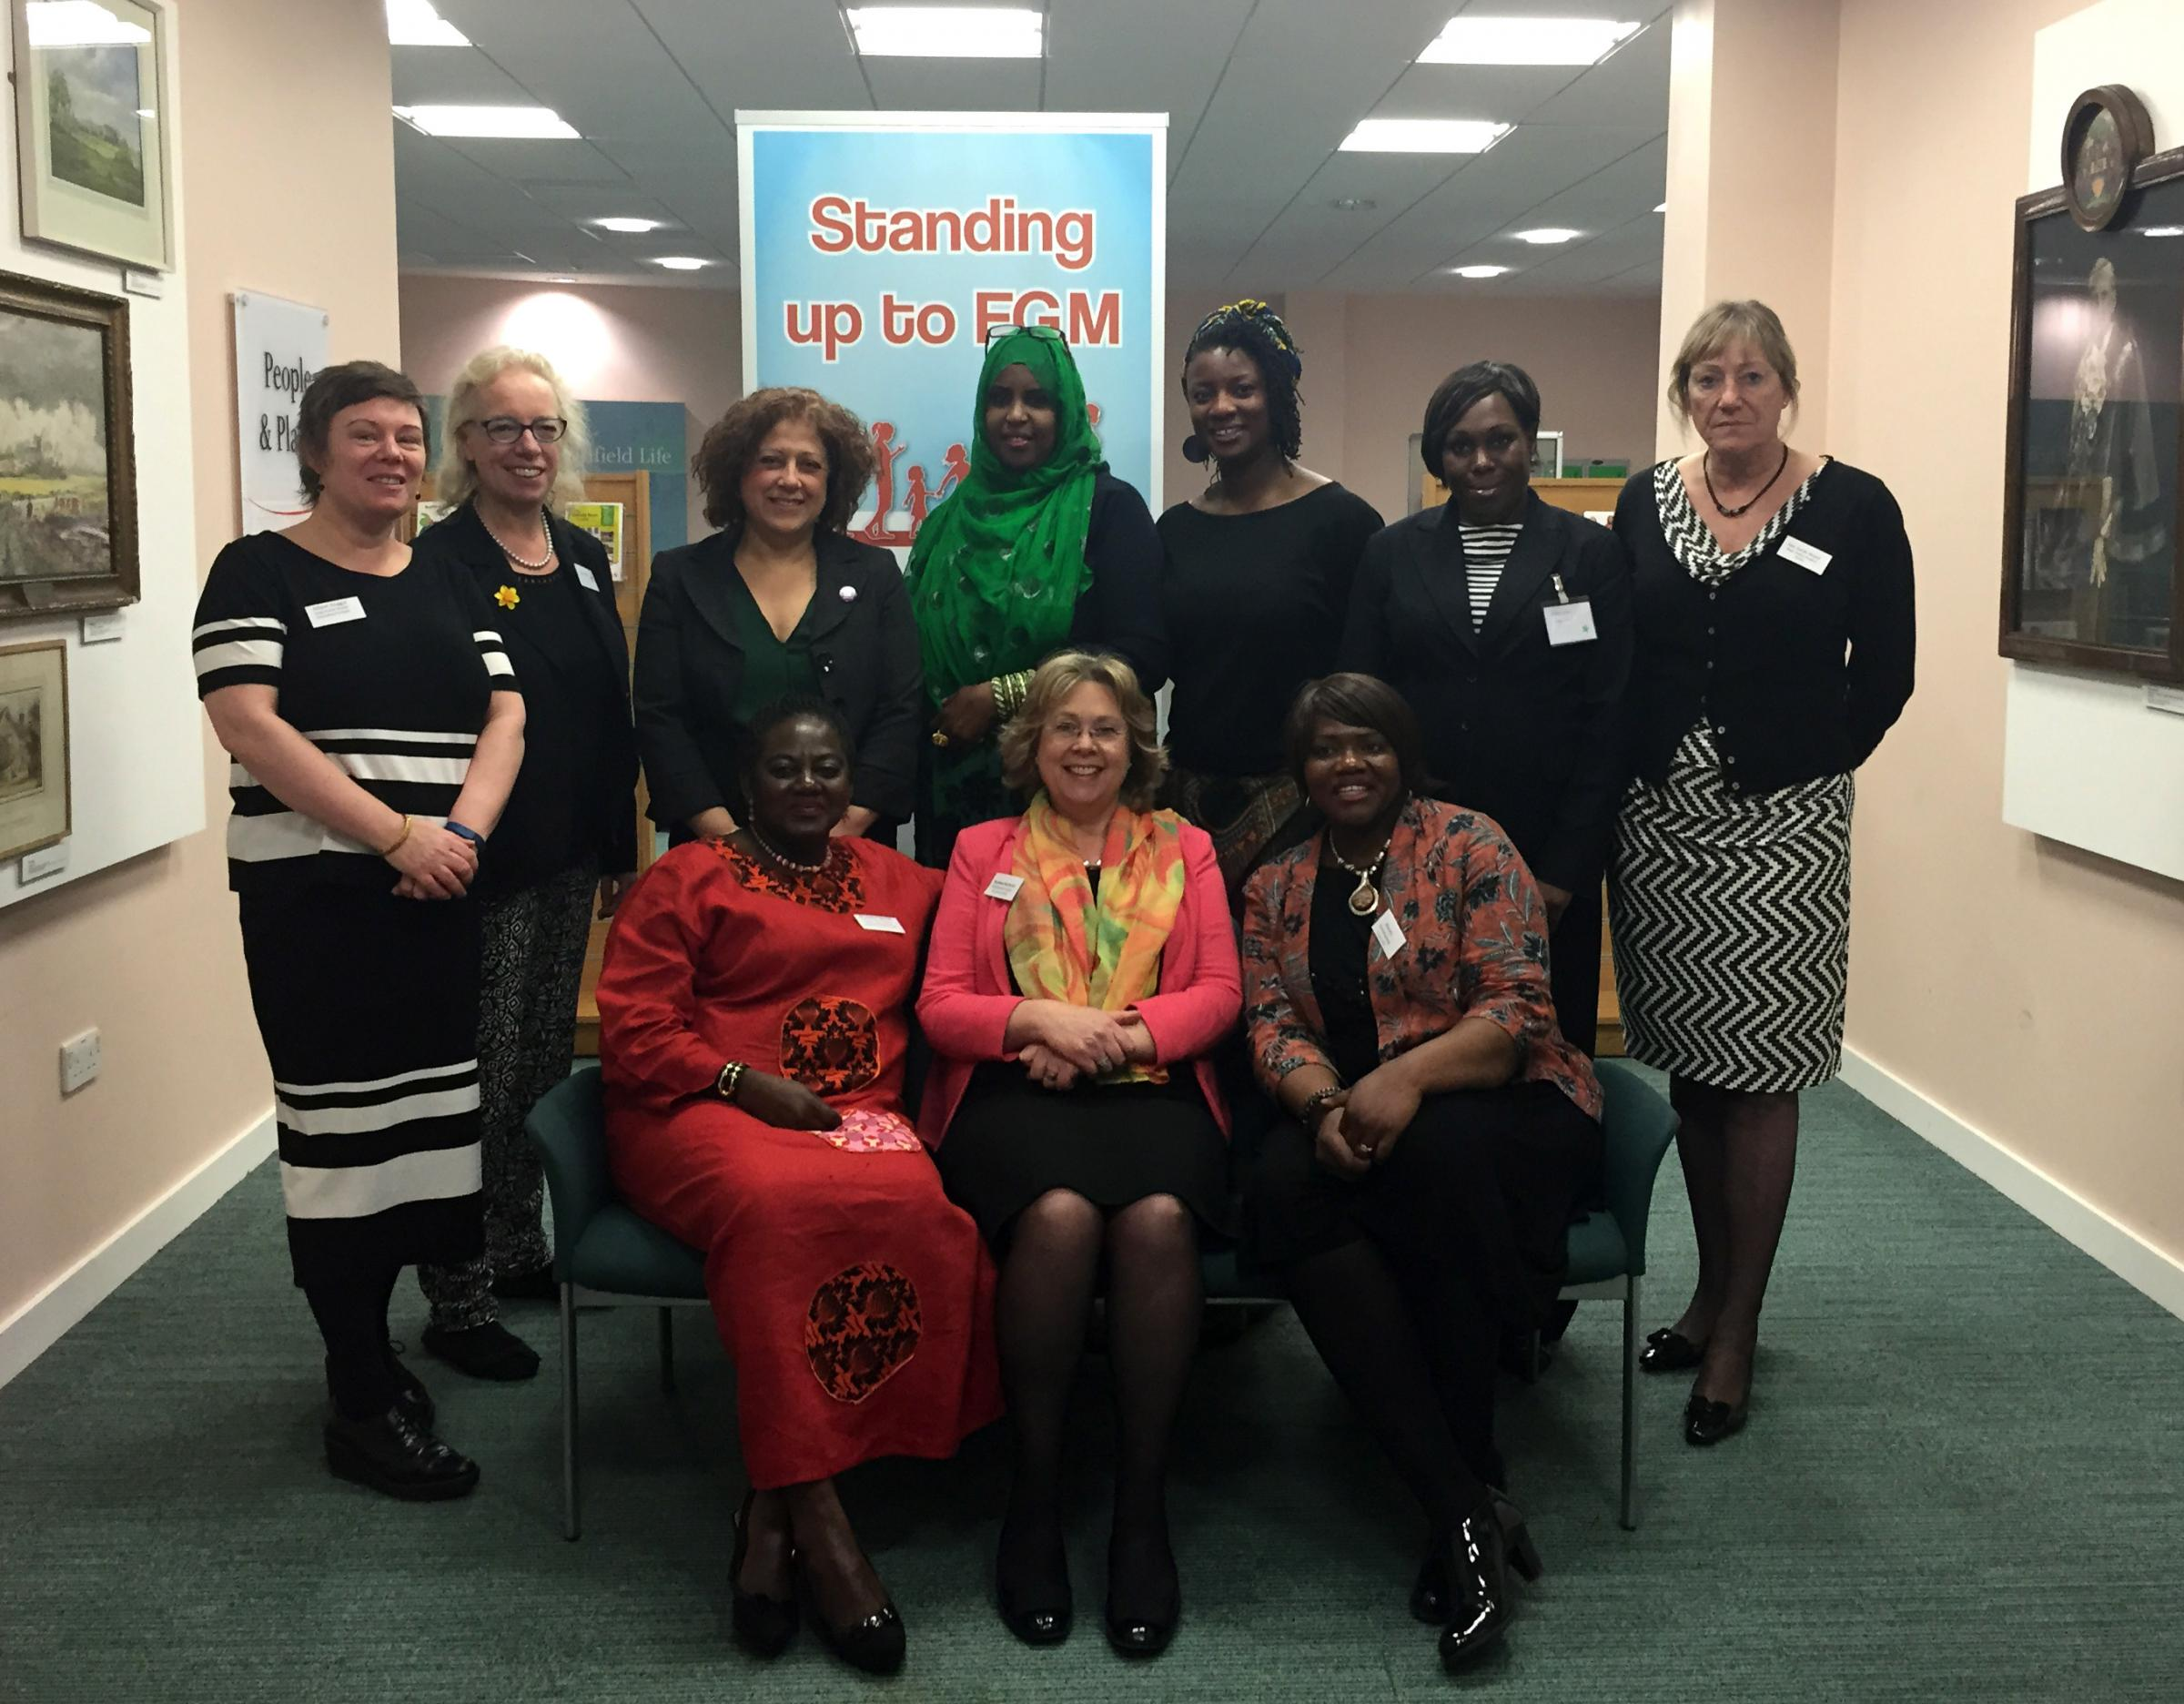 Baroness Northover with other speakers at the FGM conference held at the Dugdale Centre in Enfield Town